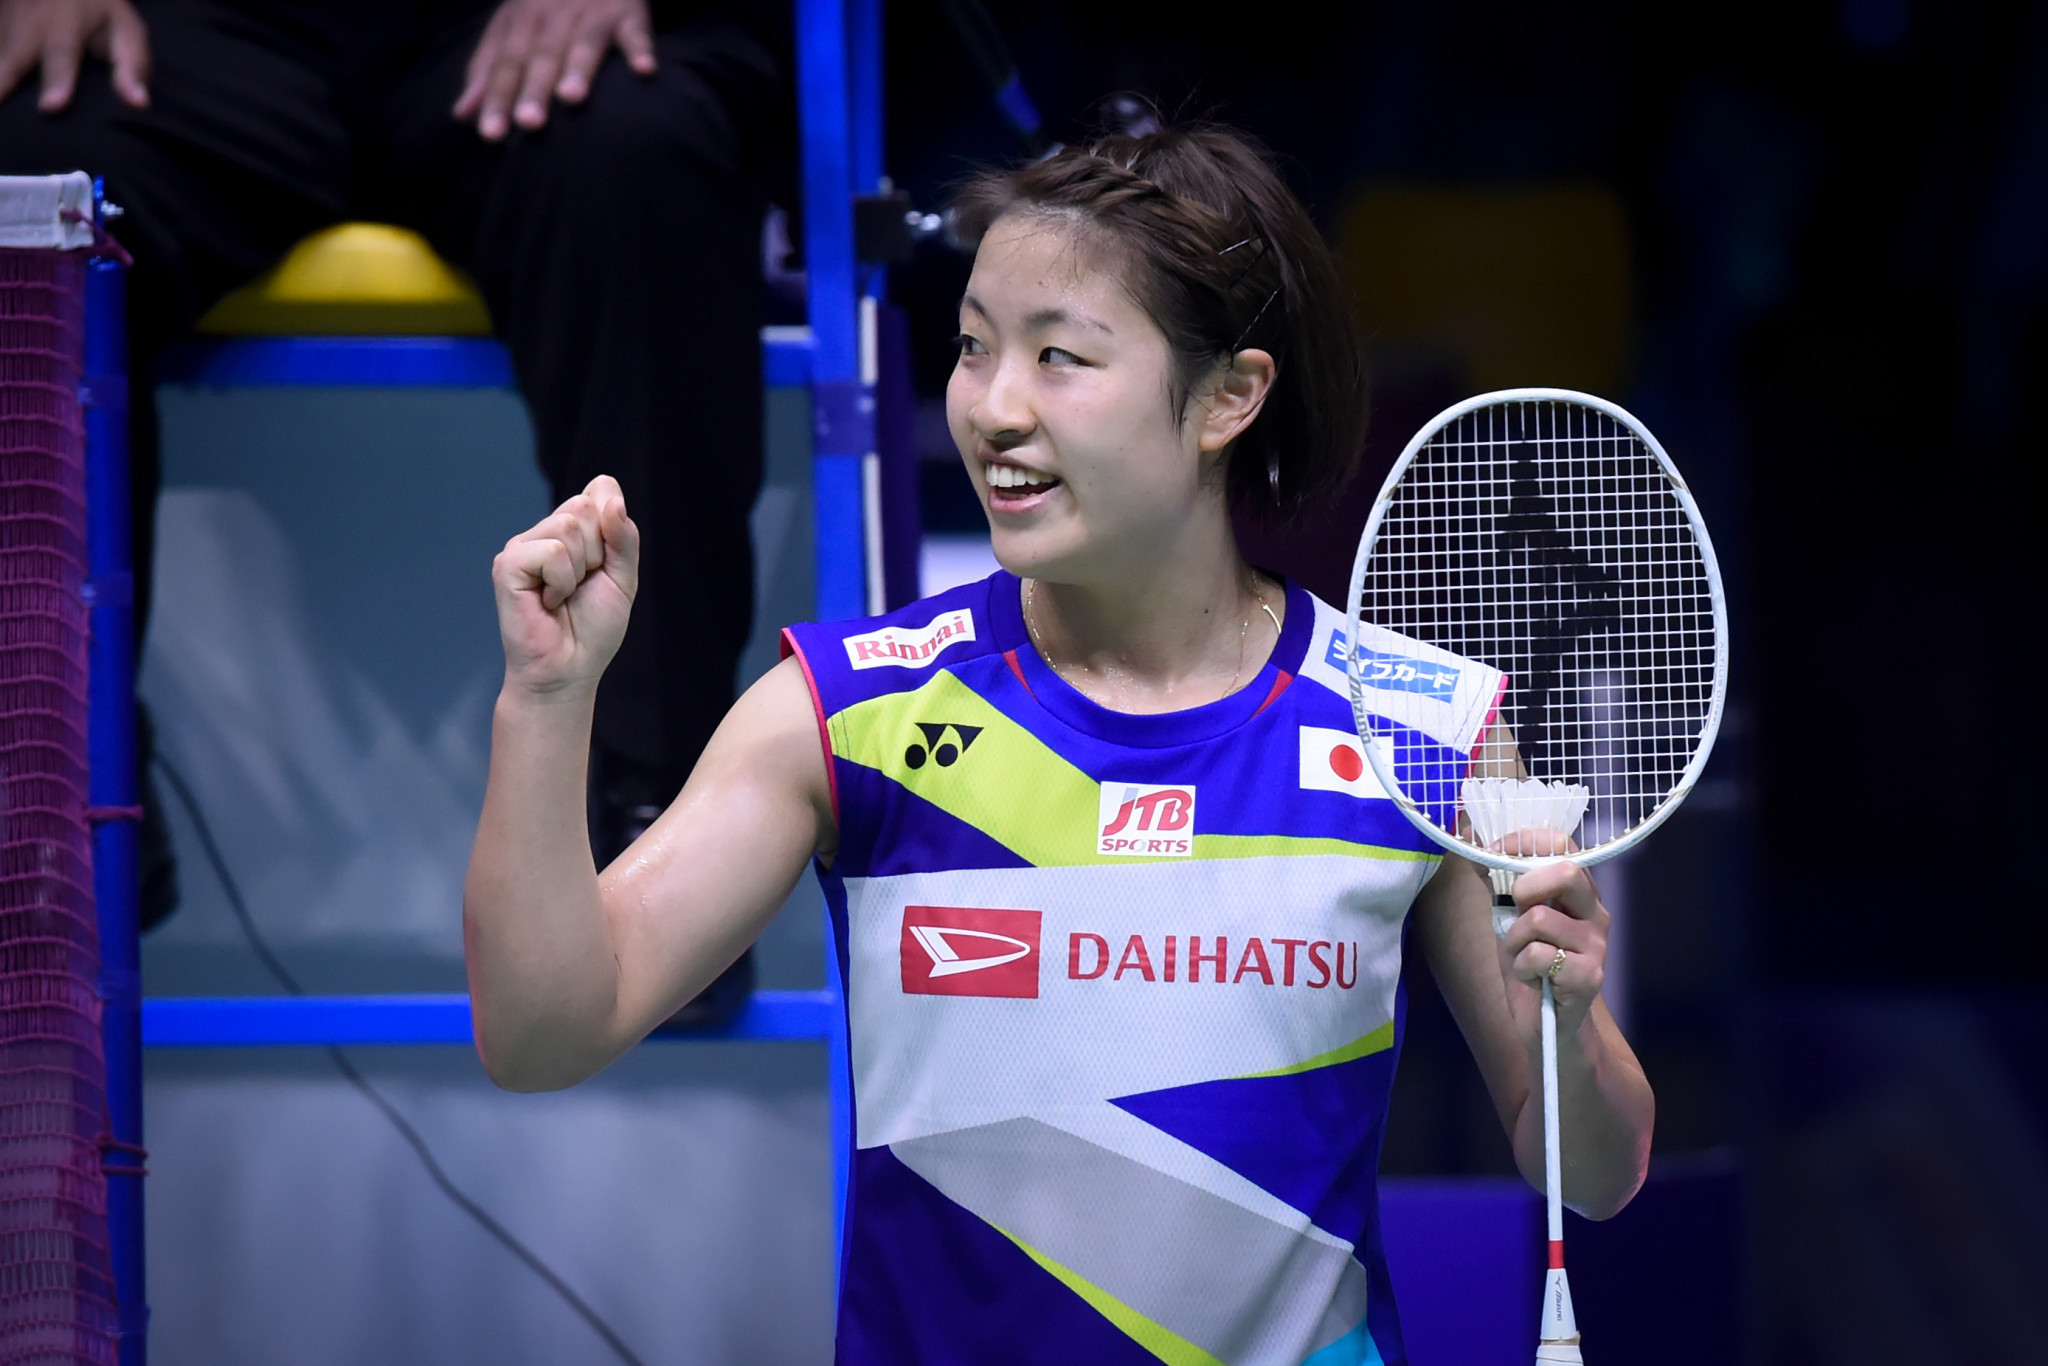 Japan and Indonesia reach last four at Sudirman Cup as Malaysian suffers freak injury